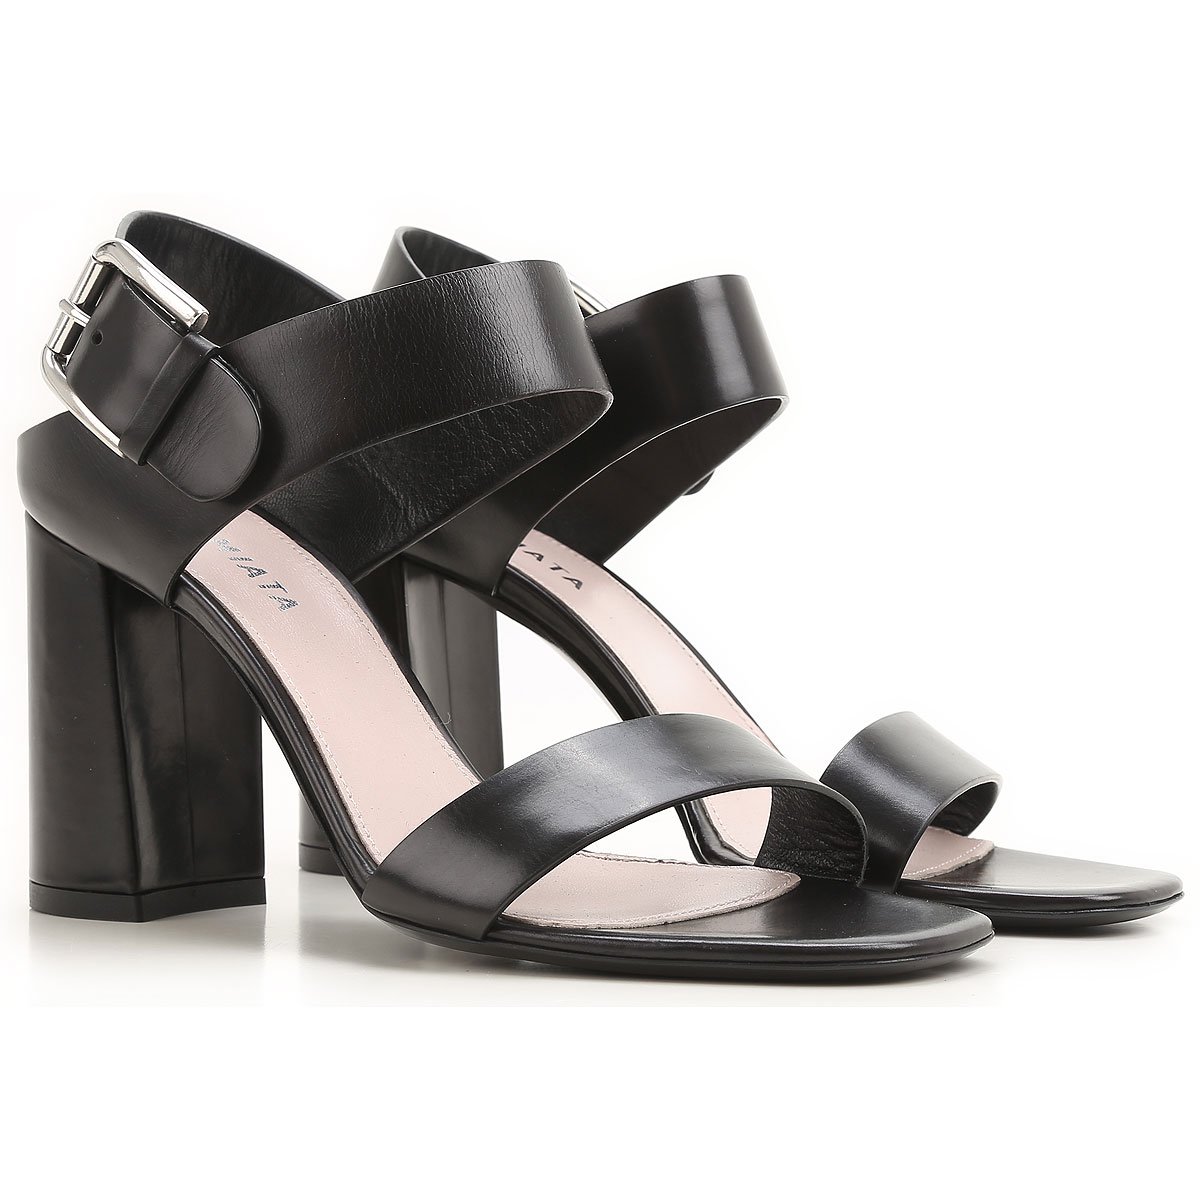 Premiata Sandals for Women On Sale in Outlet, Black, Leather, 2019, 6 9